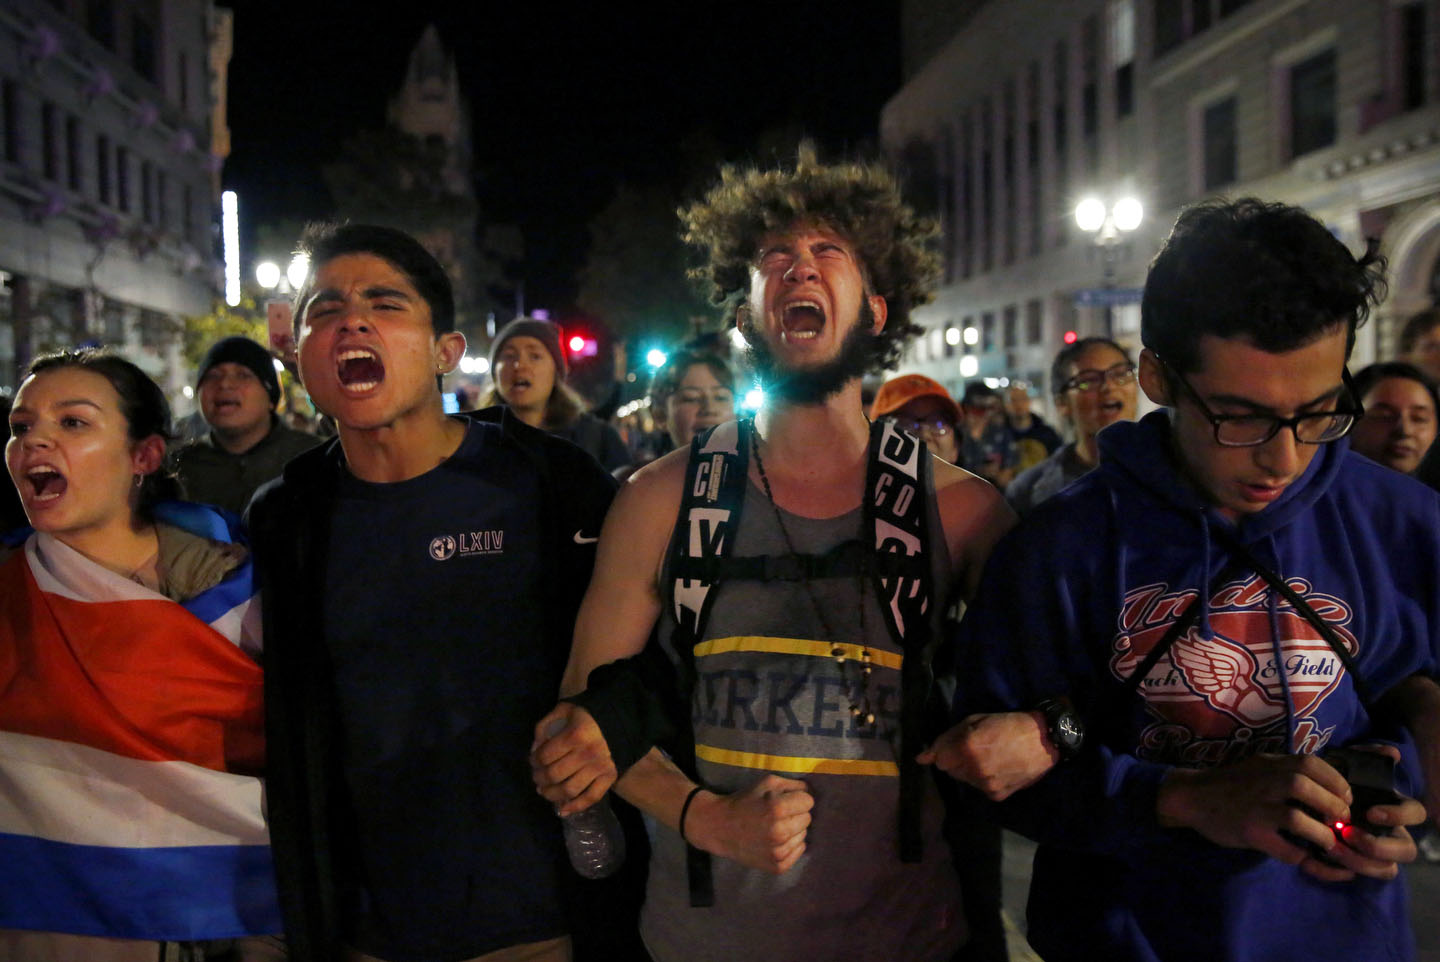 Protesters from Berkeley chant {quote}not my president{quote} as they march down Broadway during an anti-Trump protest Nov. 8, 2016 in Oakland, Calif., after the announcement that Republican presidential candidate Donald J. Trump won the presidential election.